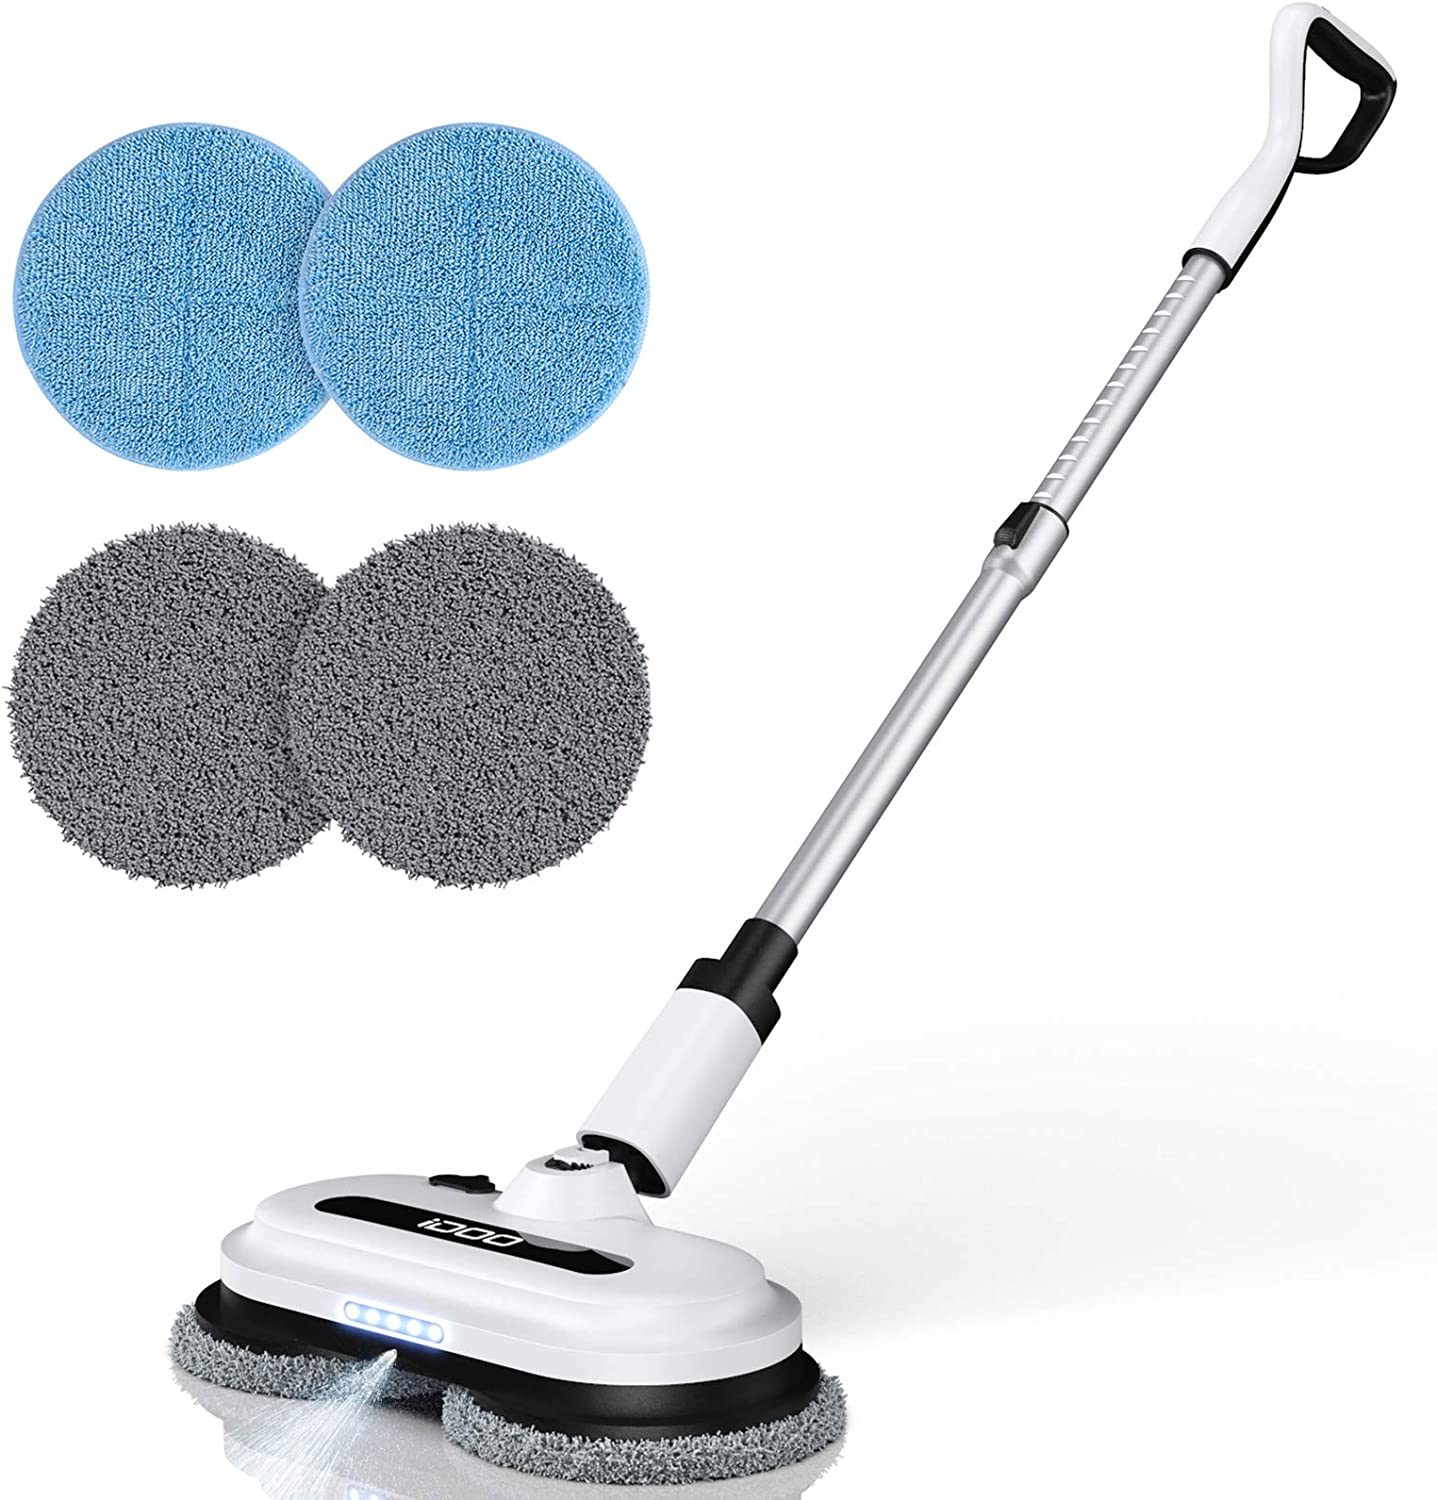 iDOO Cordless Electric Spin Mop with Built-in Water Tank for Hard Wood & Tile & Laminate & Marble Floors